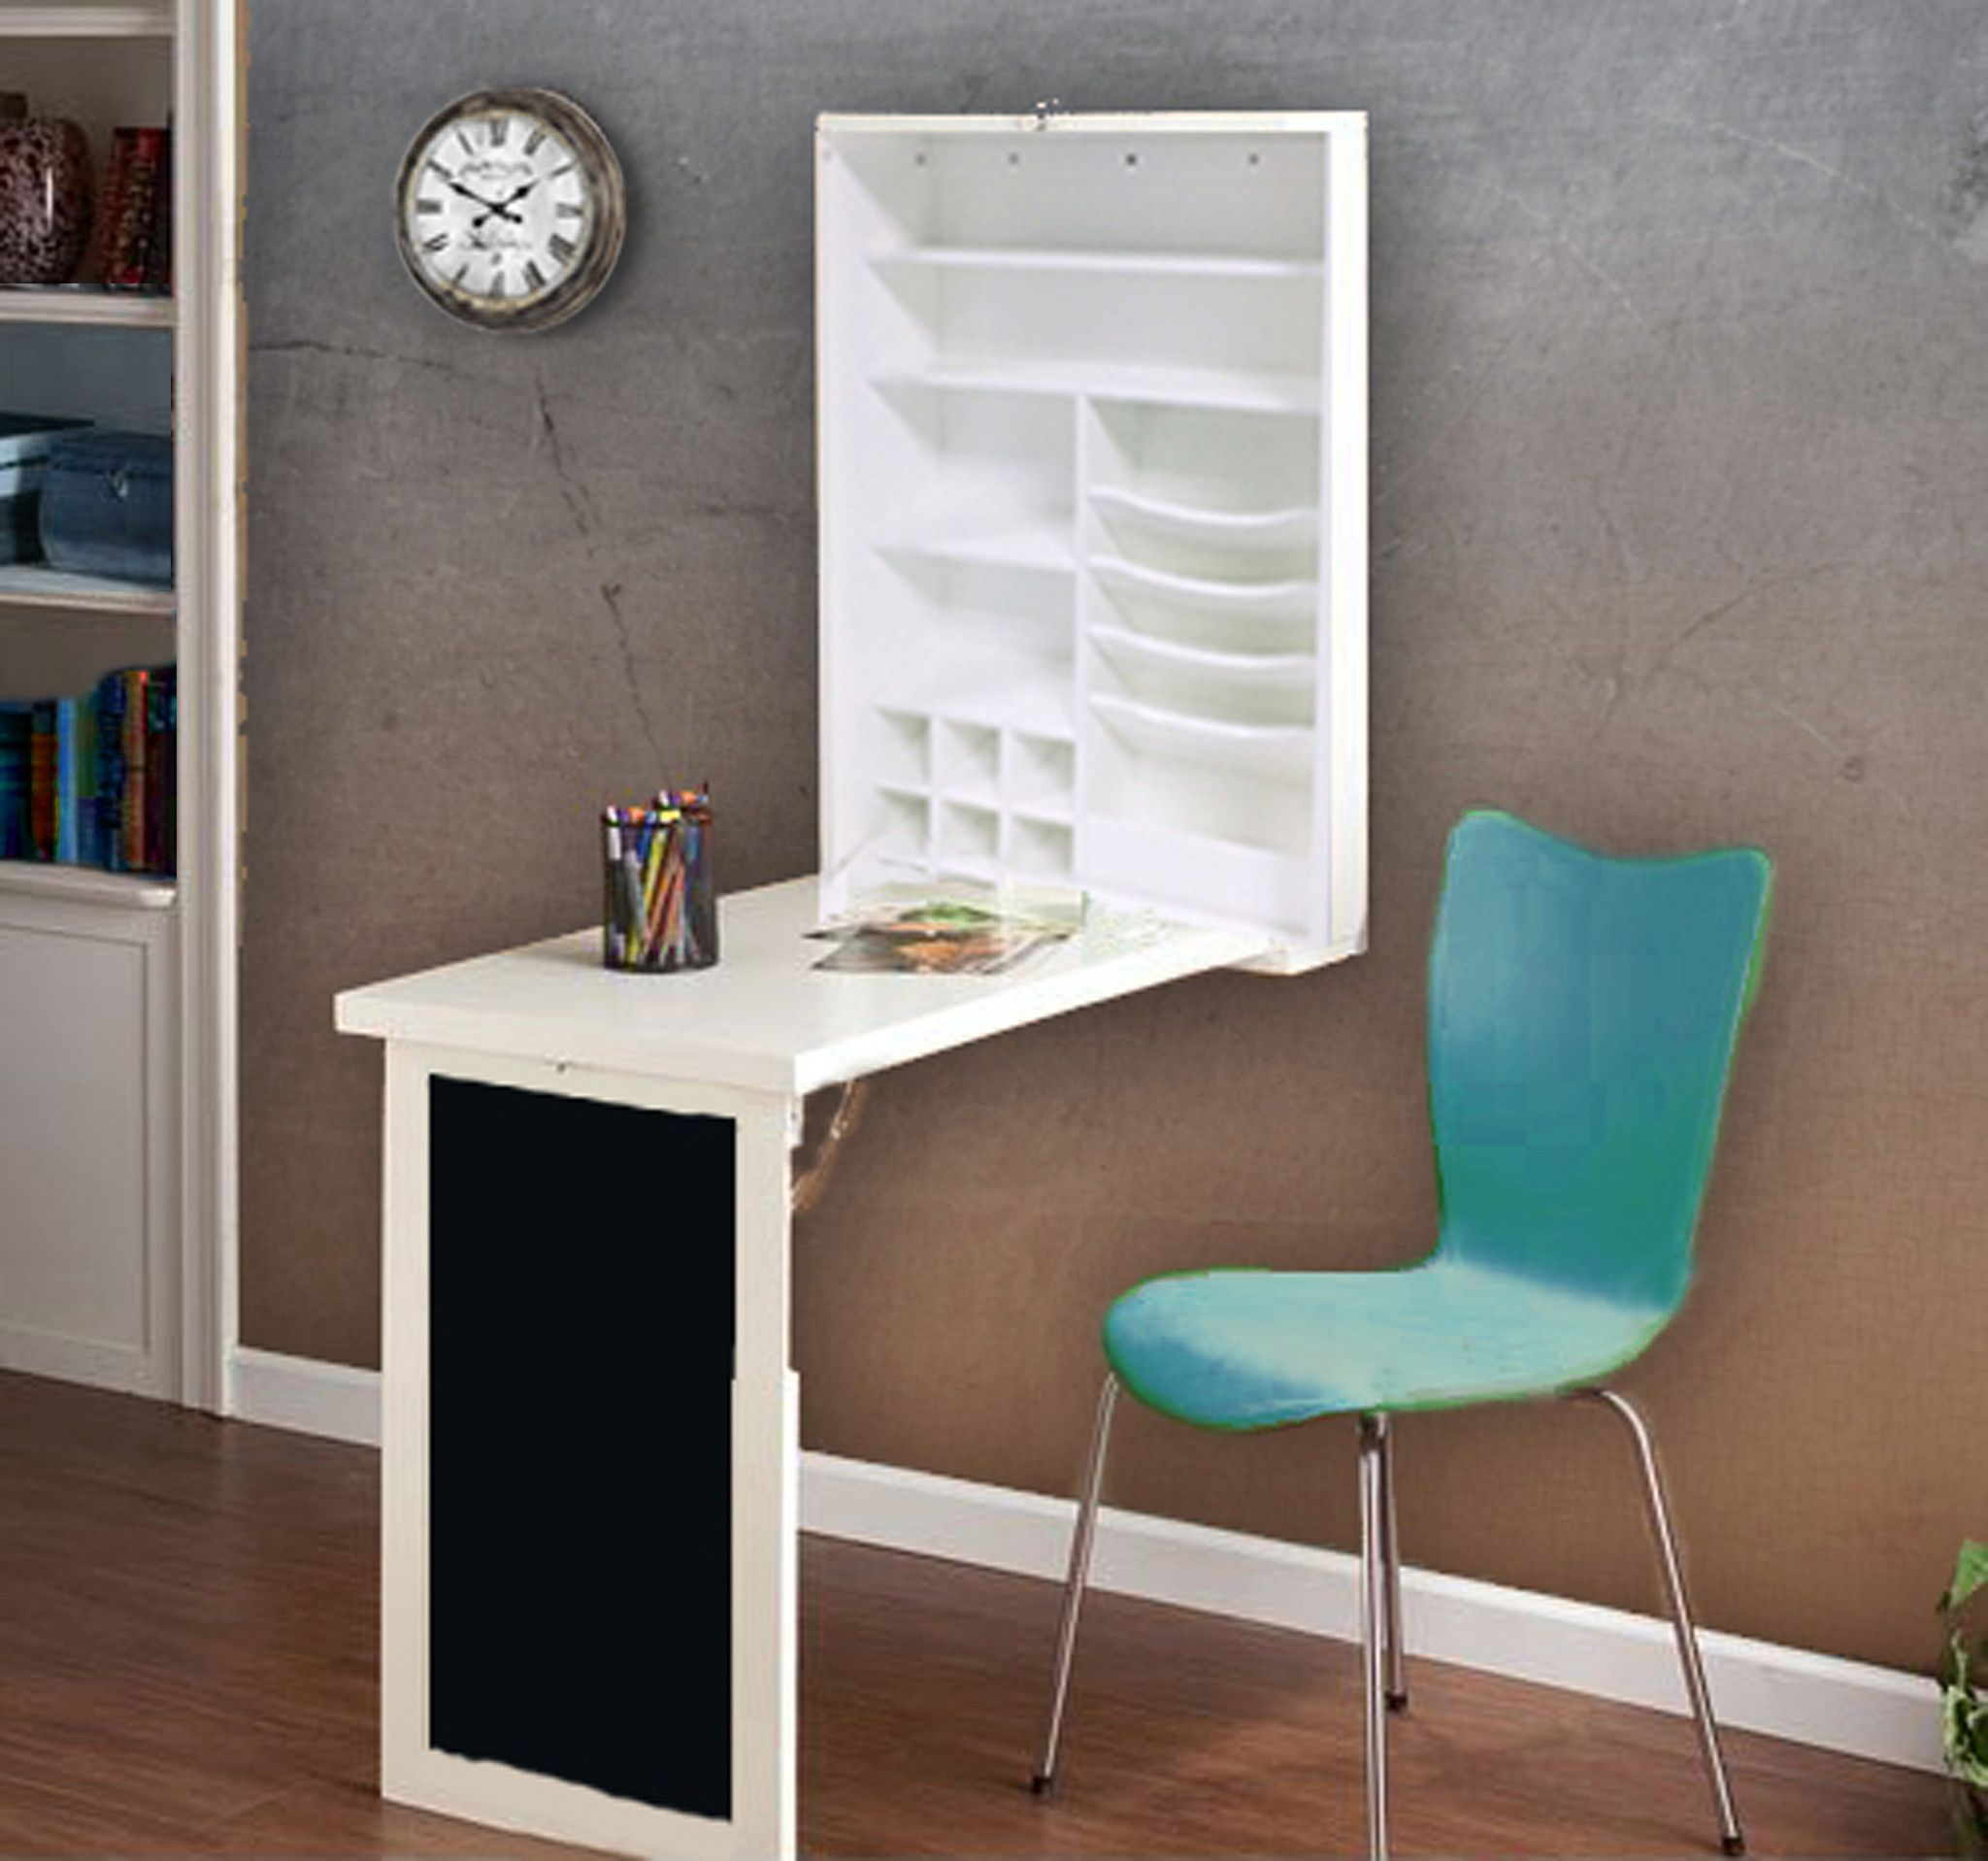 Fascinating F Down Desk Table Wall Cabinet Wall Cabinet Or Teen F Out Chair Bed Or Espresso Alley F Down Desk Table